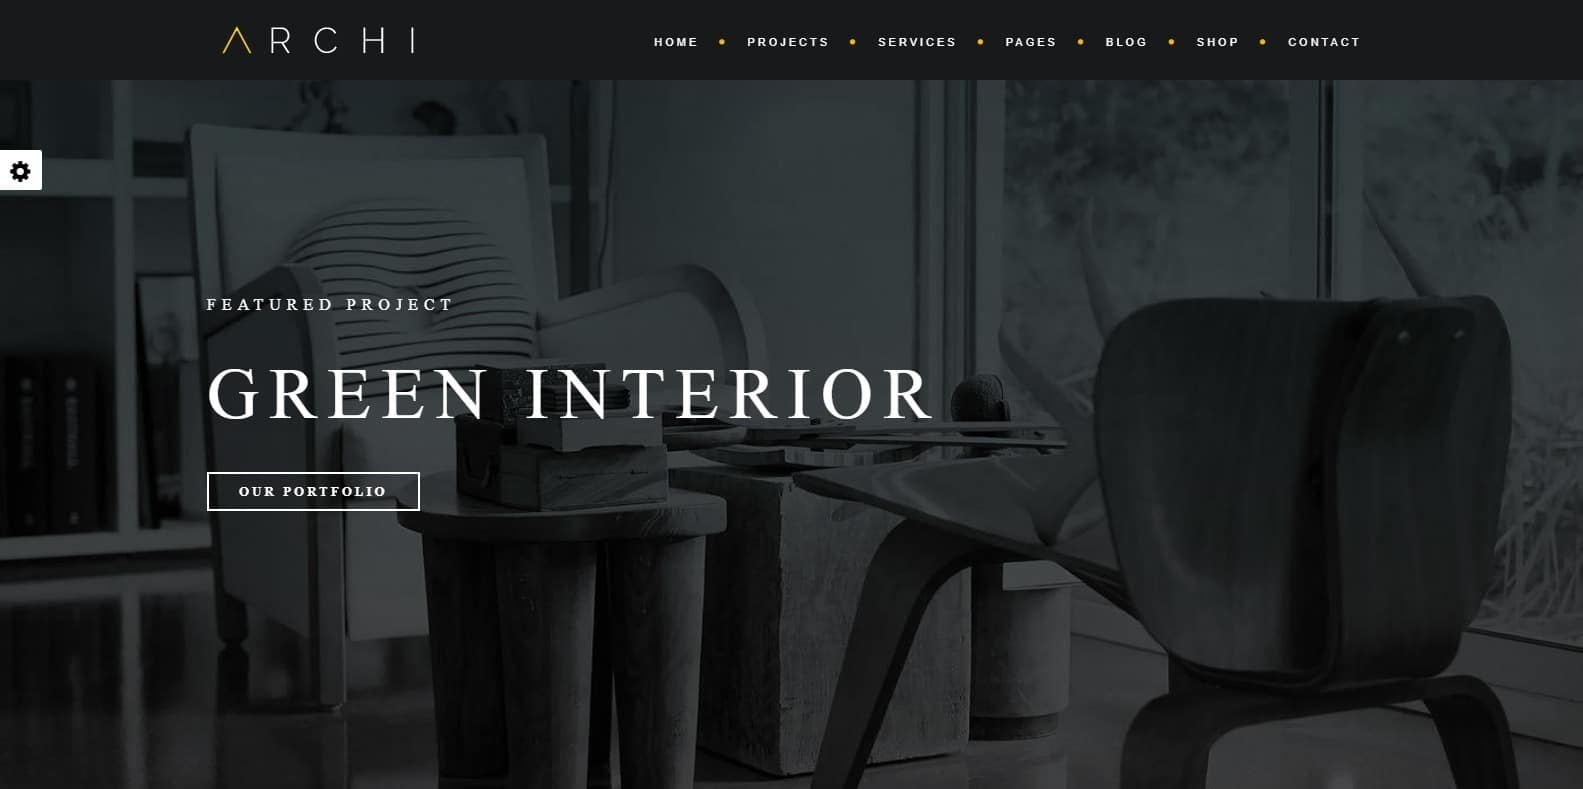 archi-interior-design-template